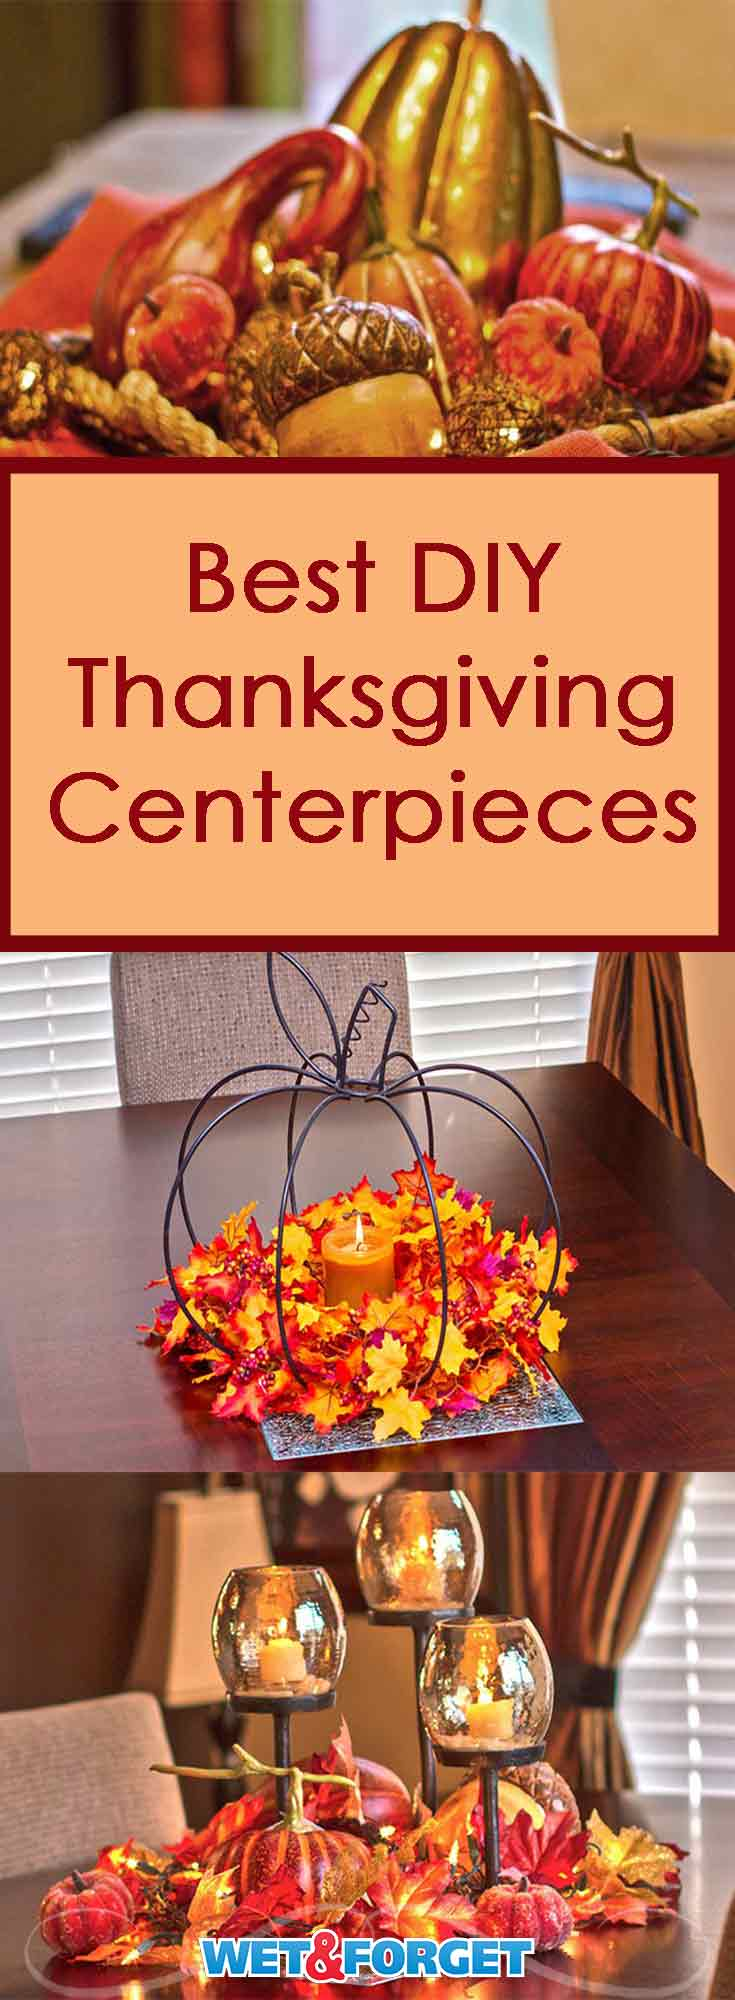 Decorating your Thanksgiving table is easy with these DIY centerpieces!